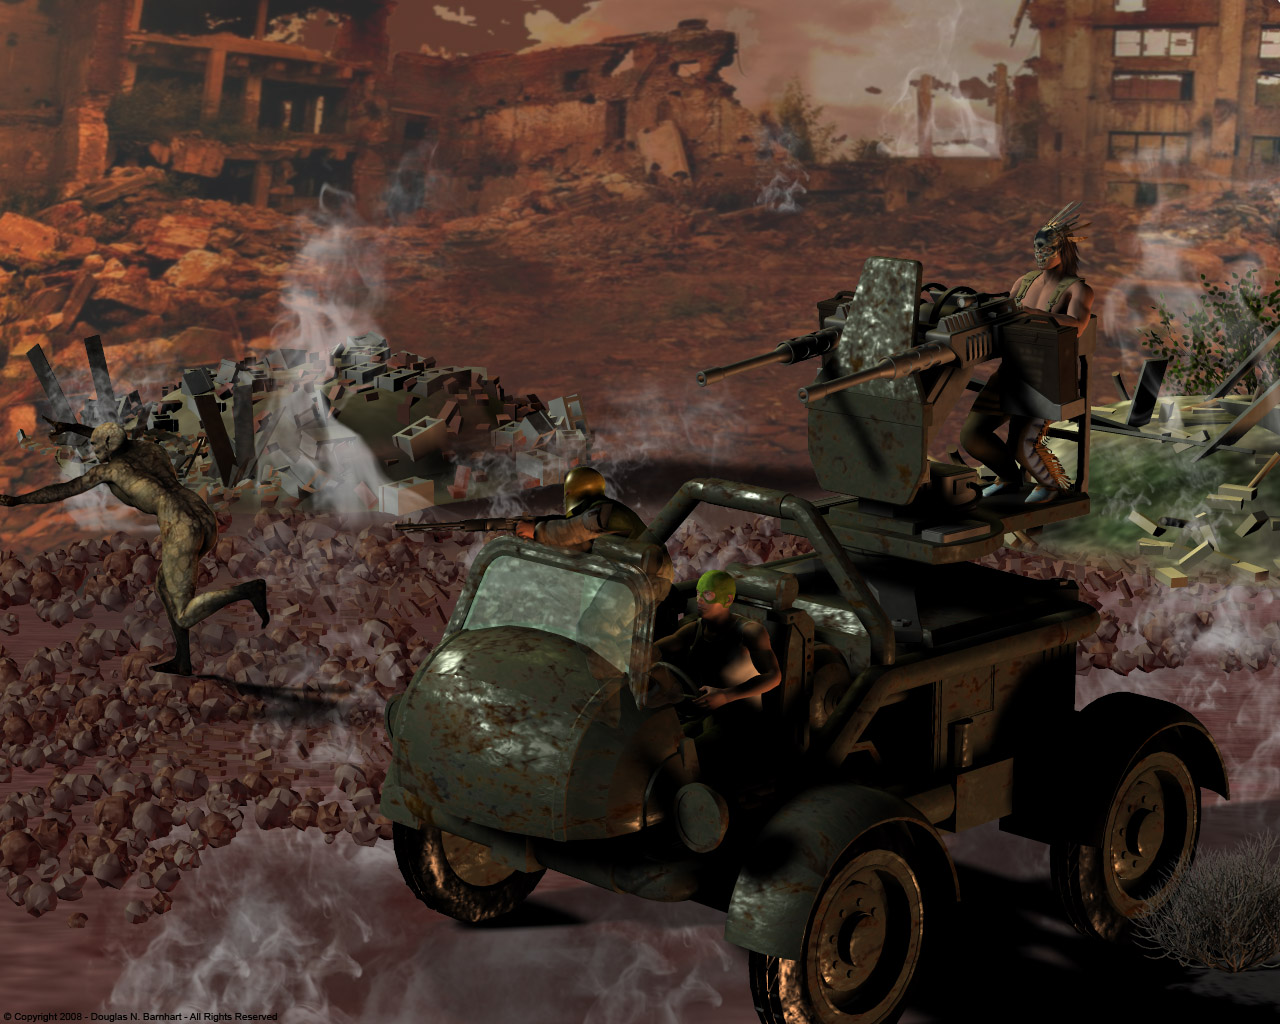 Zombie Rounds: This render was done in Poser, and features the Zombie vehicle from VP, but with my own textures to make it look more beaten up.  The background was also rendered in Poser, but it was done separately from the vehicle.  I ran out of memory in Poser, due to the complexity.  I composited them together in Photoshop, and the whisps of smoke are the only post production work.